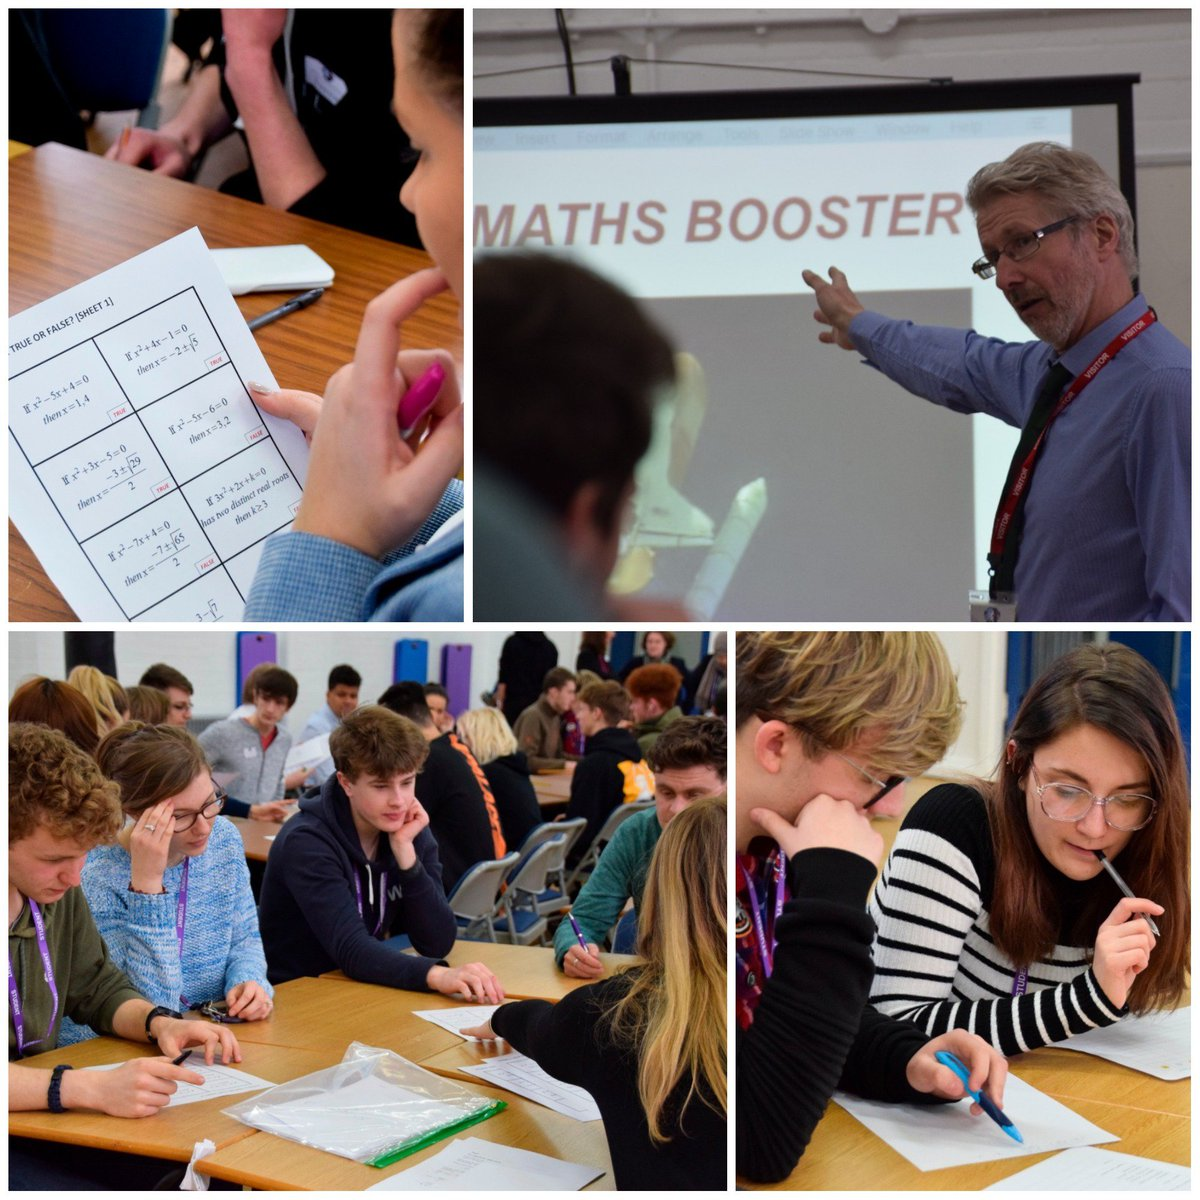 We're hosting a Year 12 Pure #Maths Booster workshop for local schools today @qphschester led by #MartinBamber #furthermaths Programme Leader & #PGCE student helpers from @uochester #support #Alevels @qphs6thform @christofidelis #EPCHS @UCEAcademy @chestertweetsuk @ChesterChron